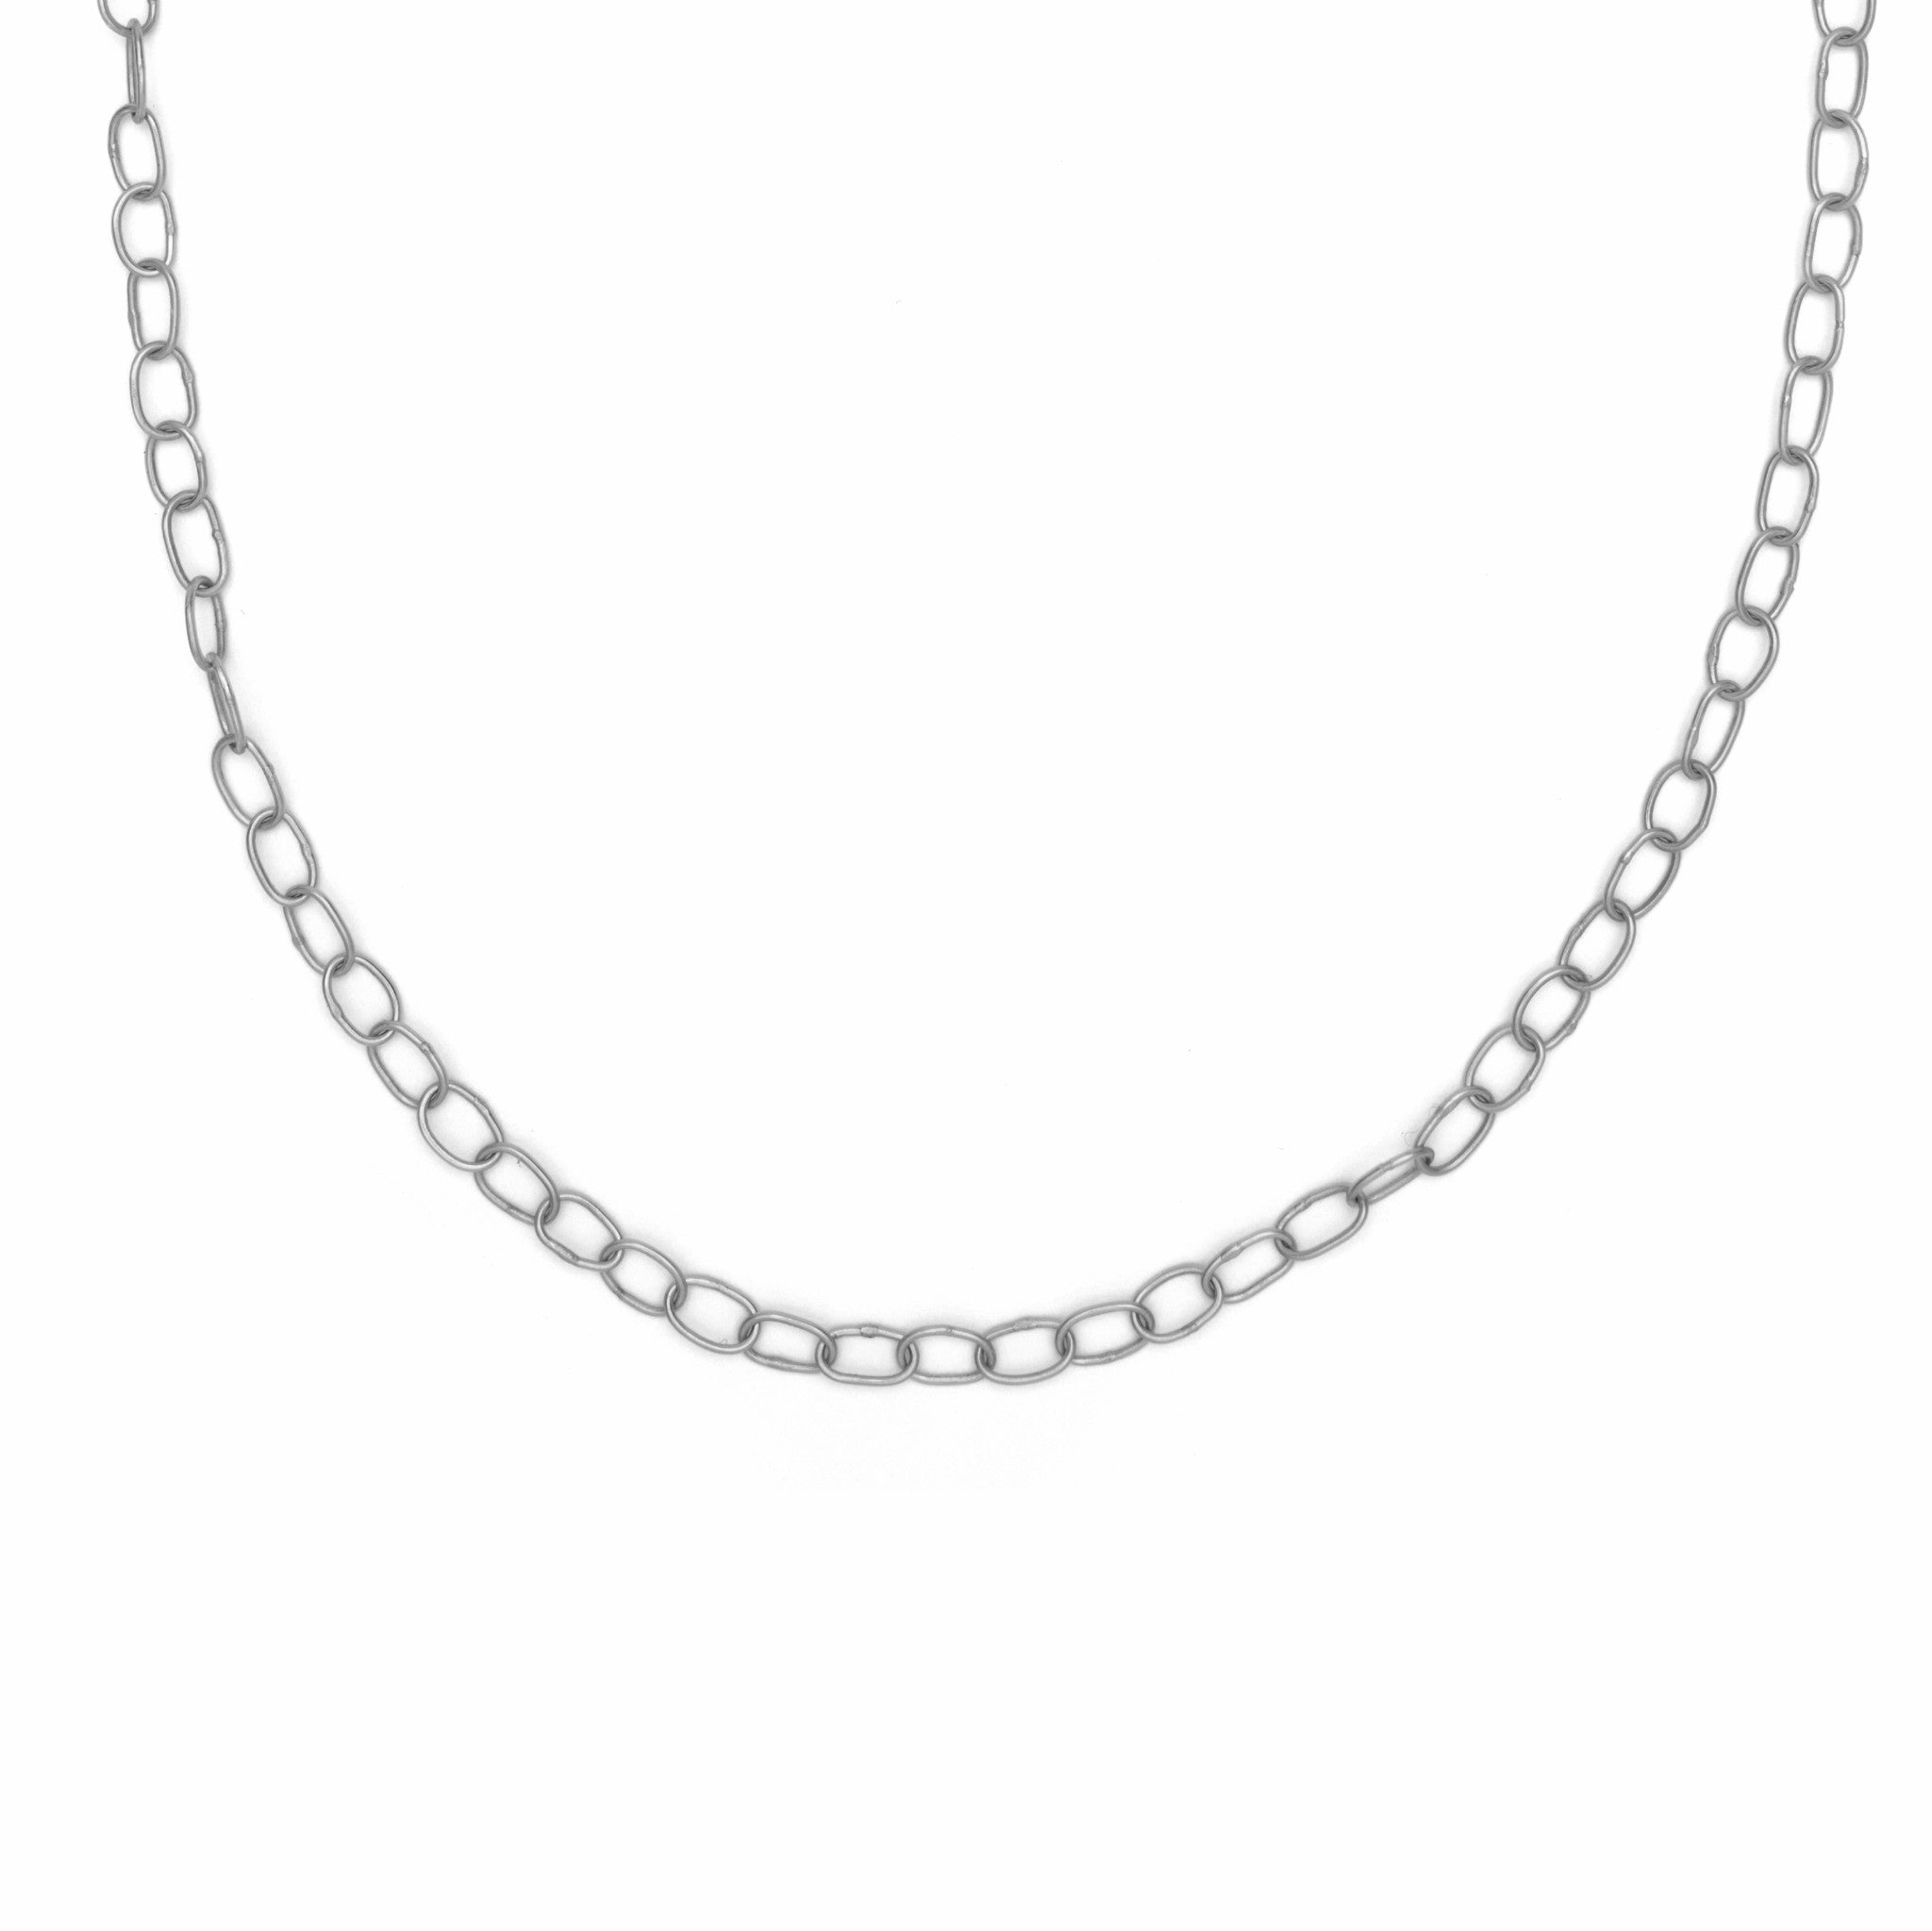 Petite Chain Necklace